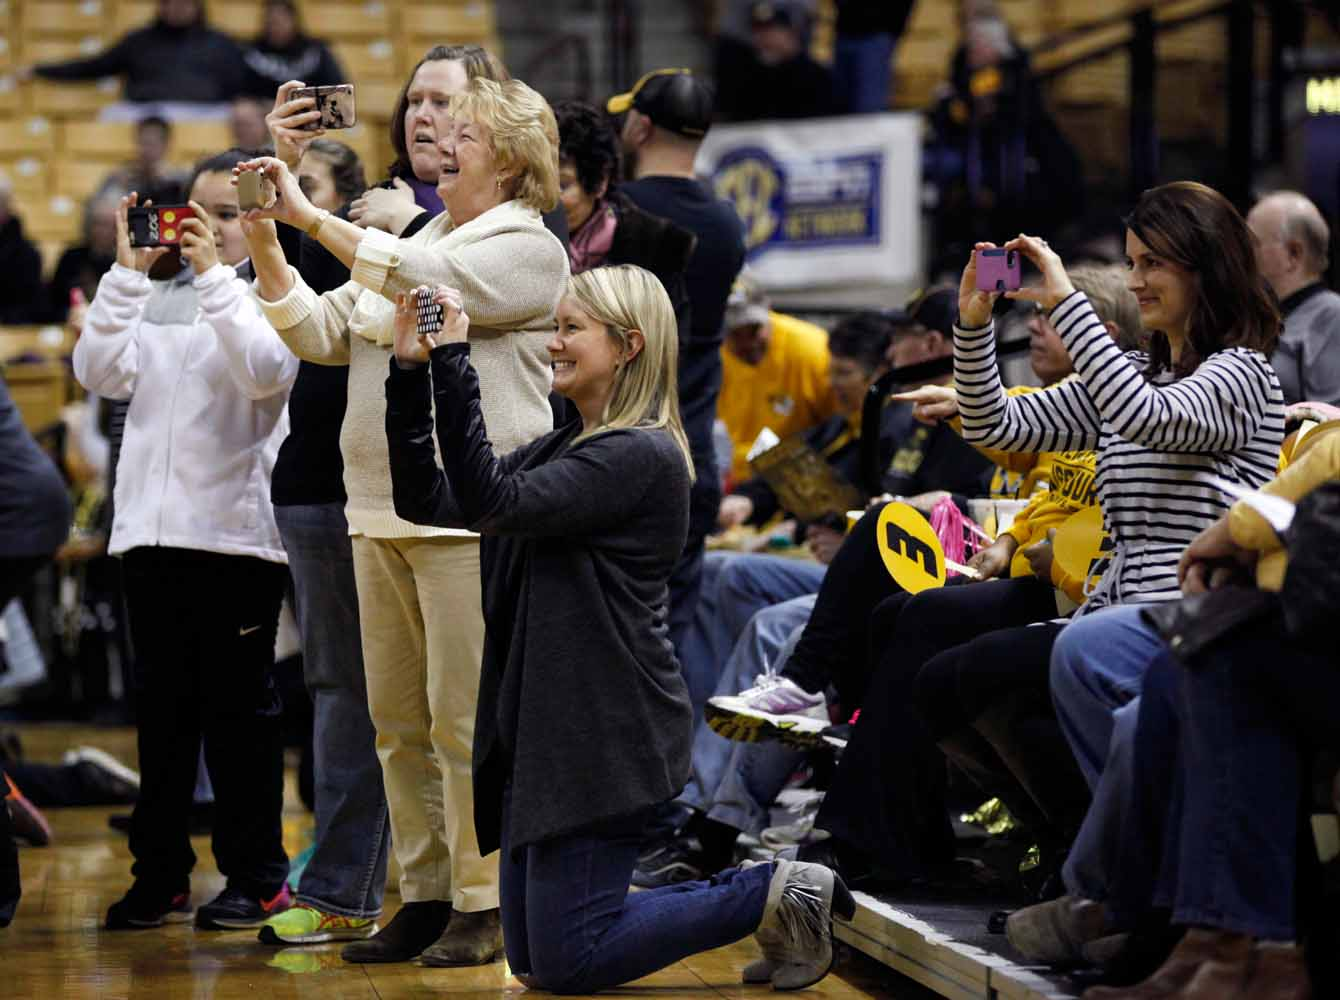 Parents record their daughters on their cell phones during a pre-game show with the Golden Girls Thursday evening, Feb. 11, 2016 at Mizzou Arena.